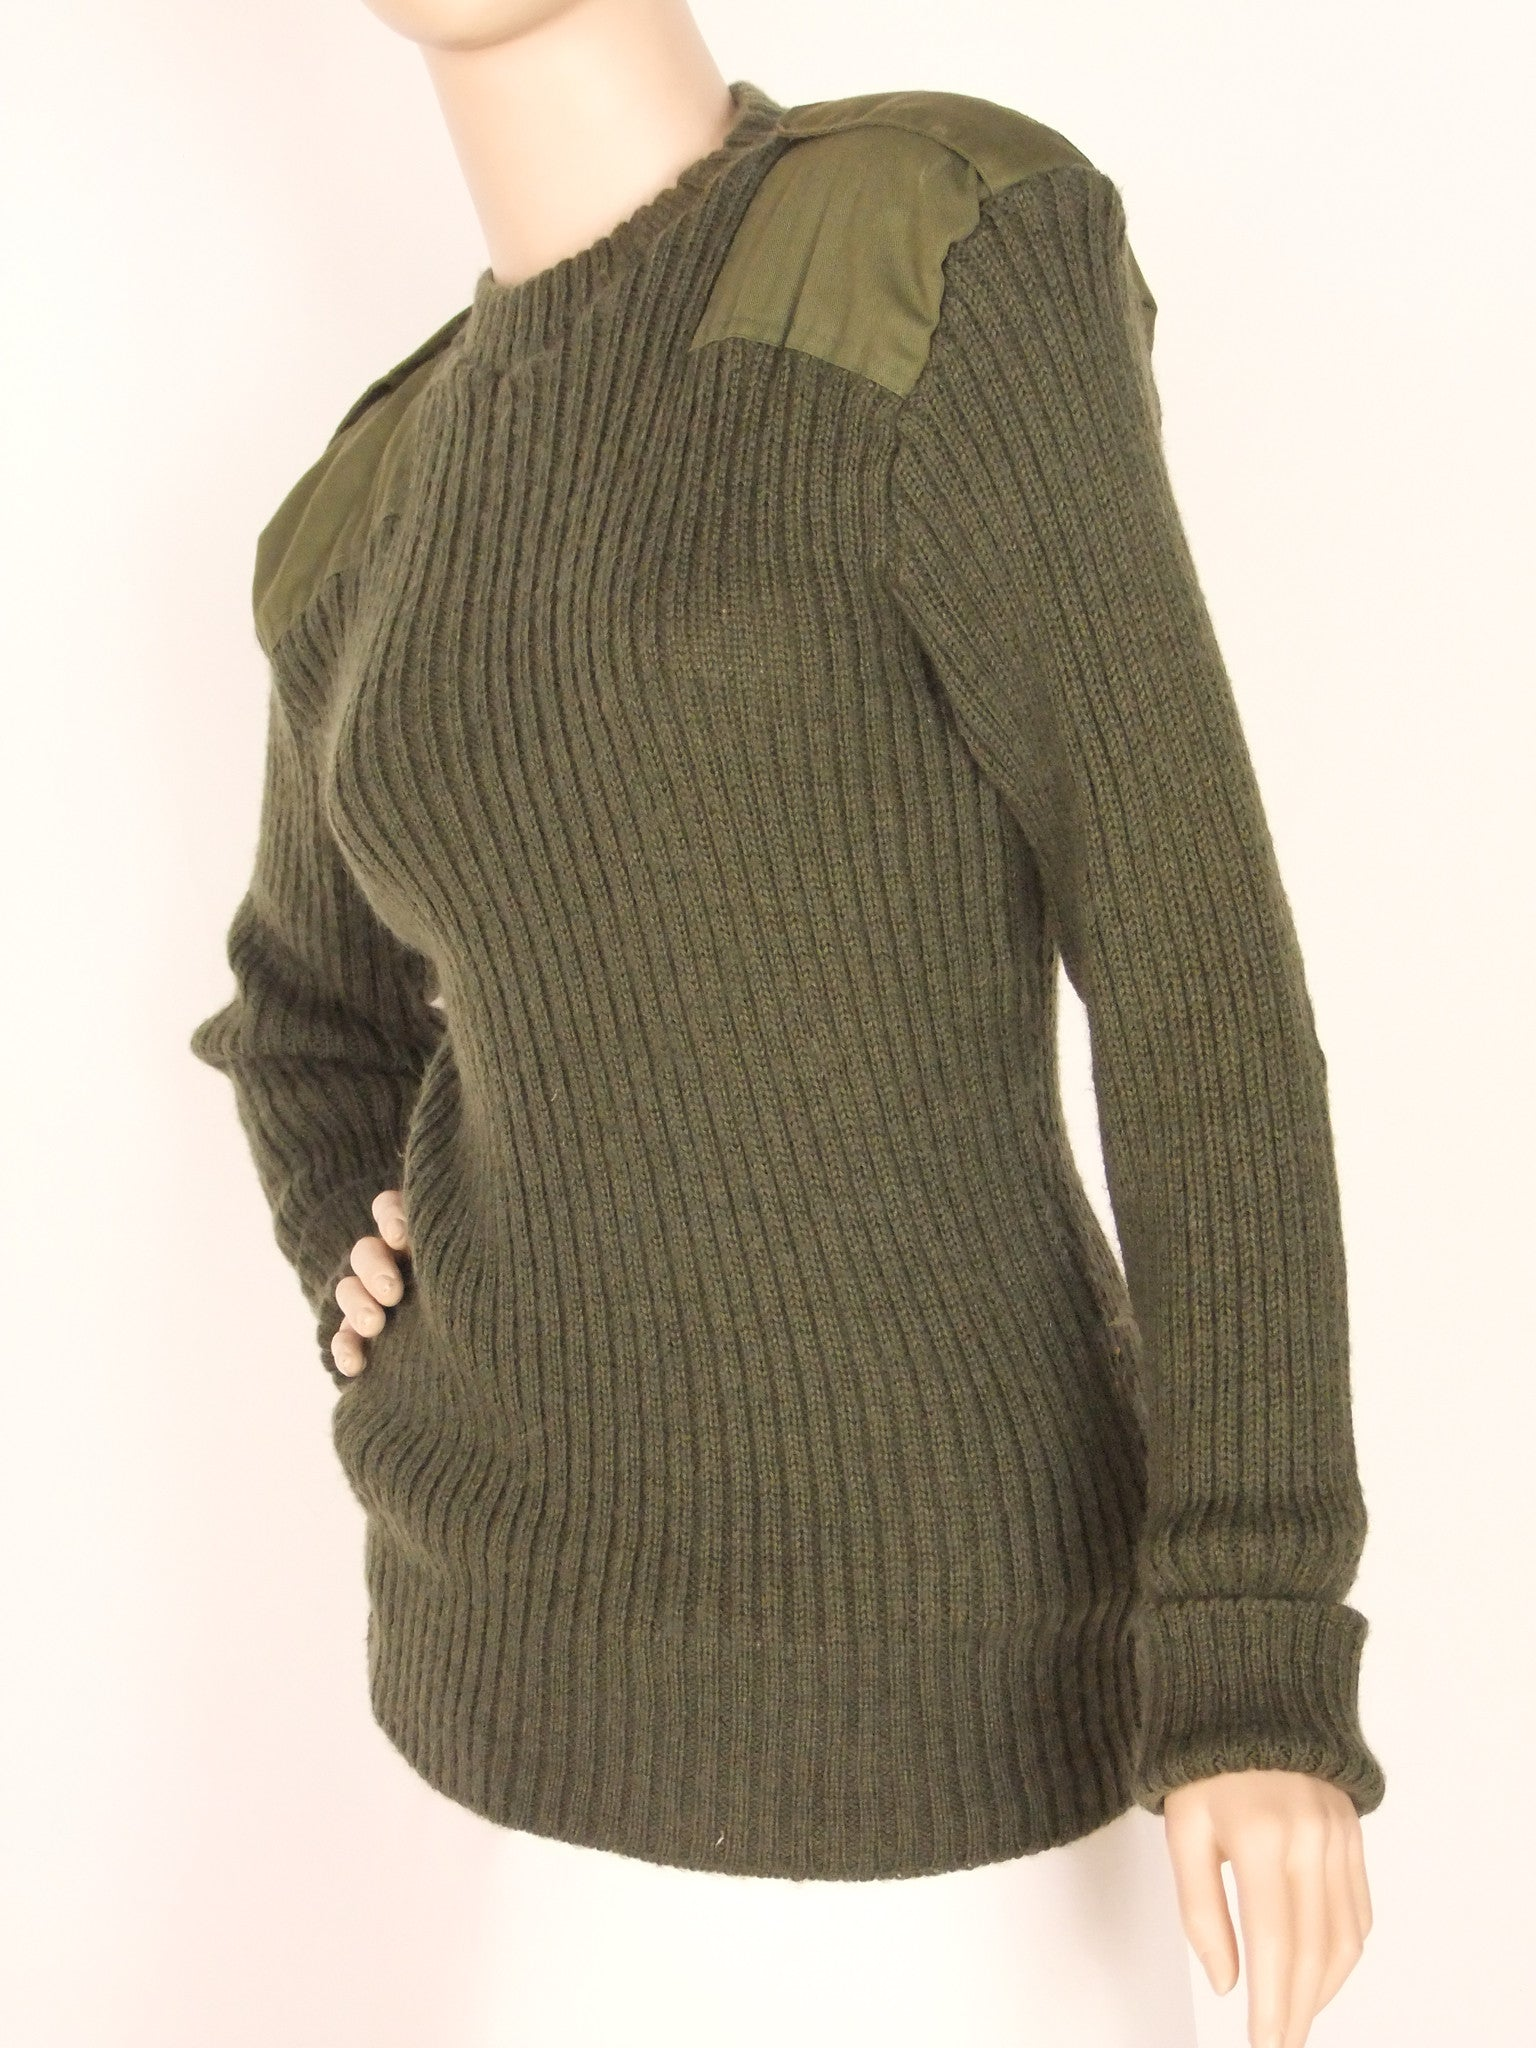 Us Army Surplus >> Army Wooly Pully – Golding Surplus